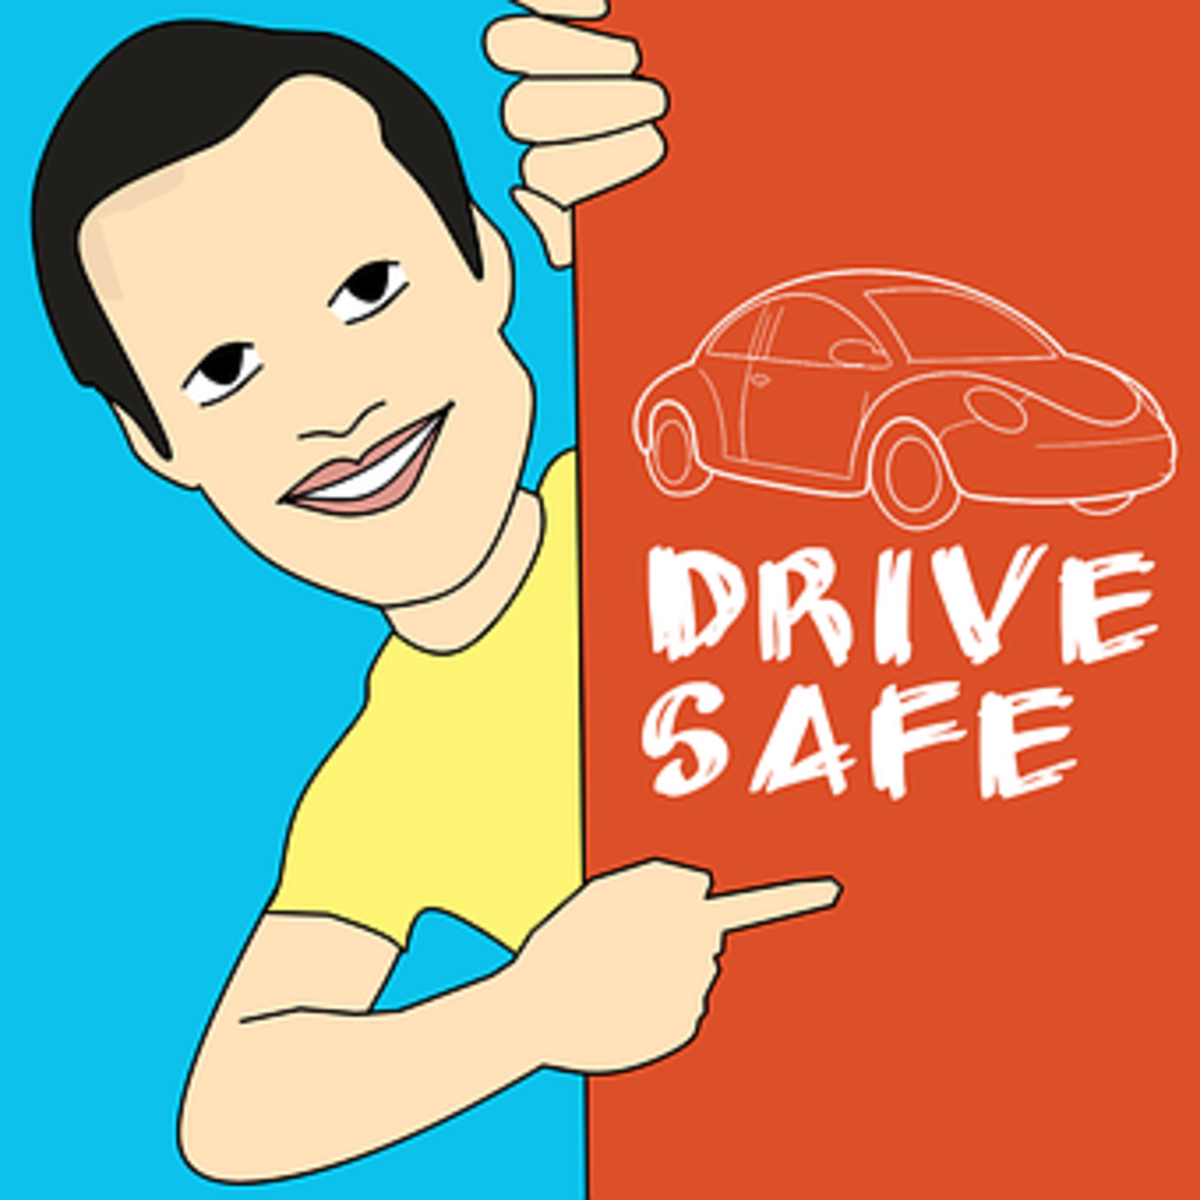 Drive safe is possible and achievable